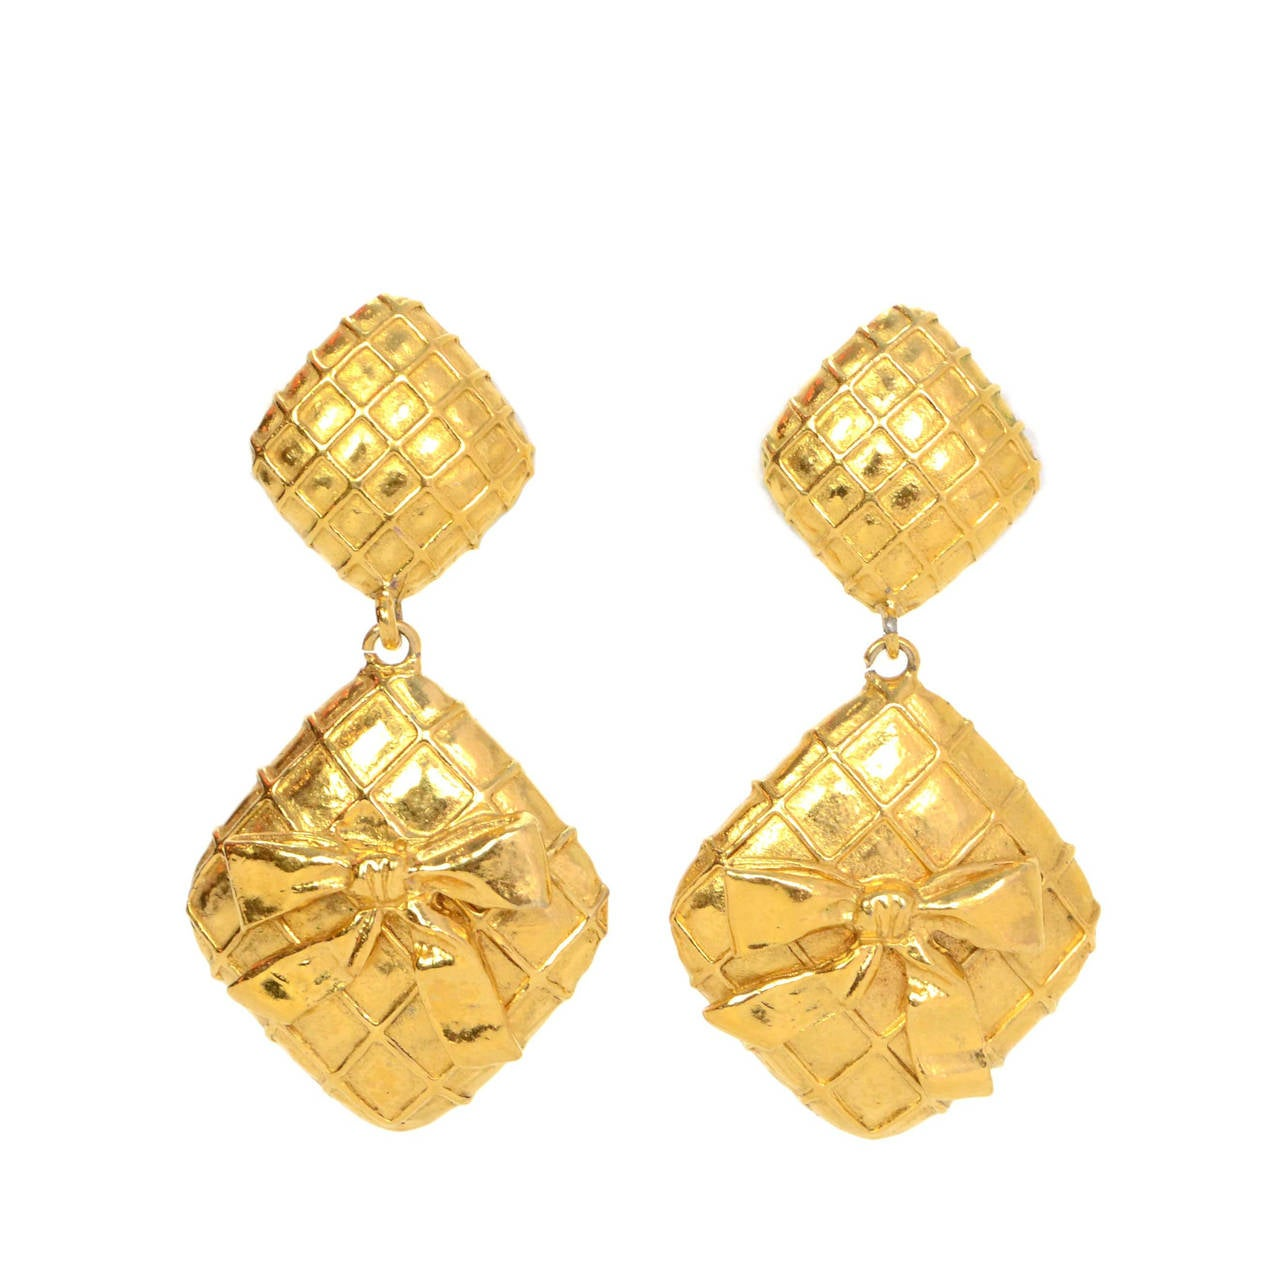 Chanel Vintage '70s Gold Double Diamond & Bow Clip On Earrings 1